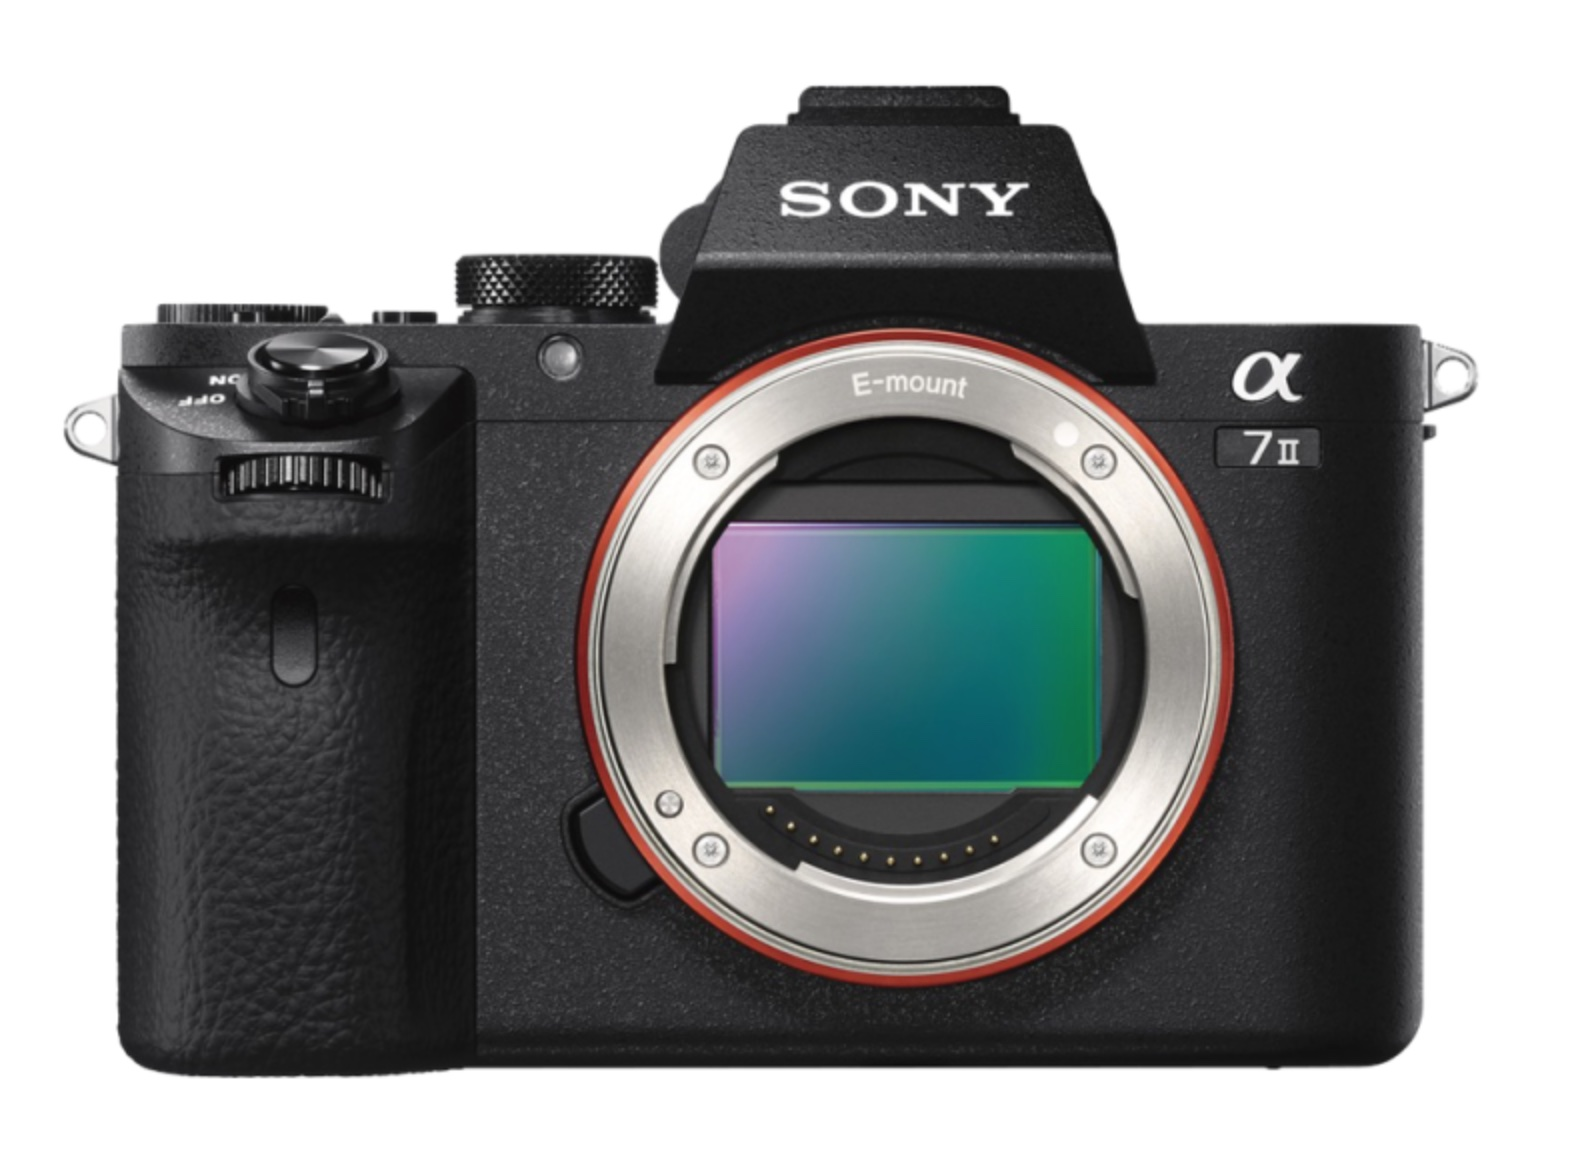 http://thedigitalstory.com/2015/03/31/sony-a7ii-front.jpg